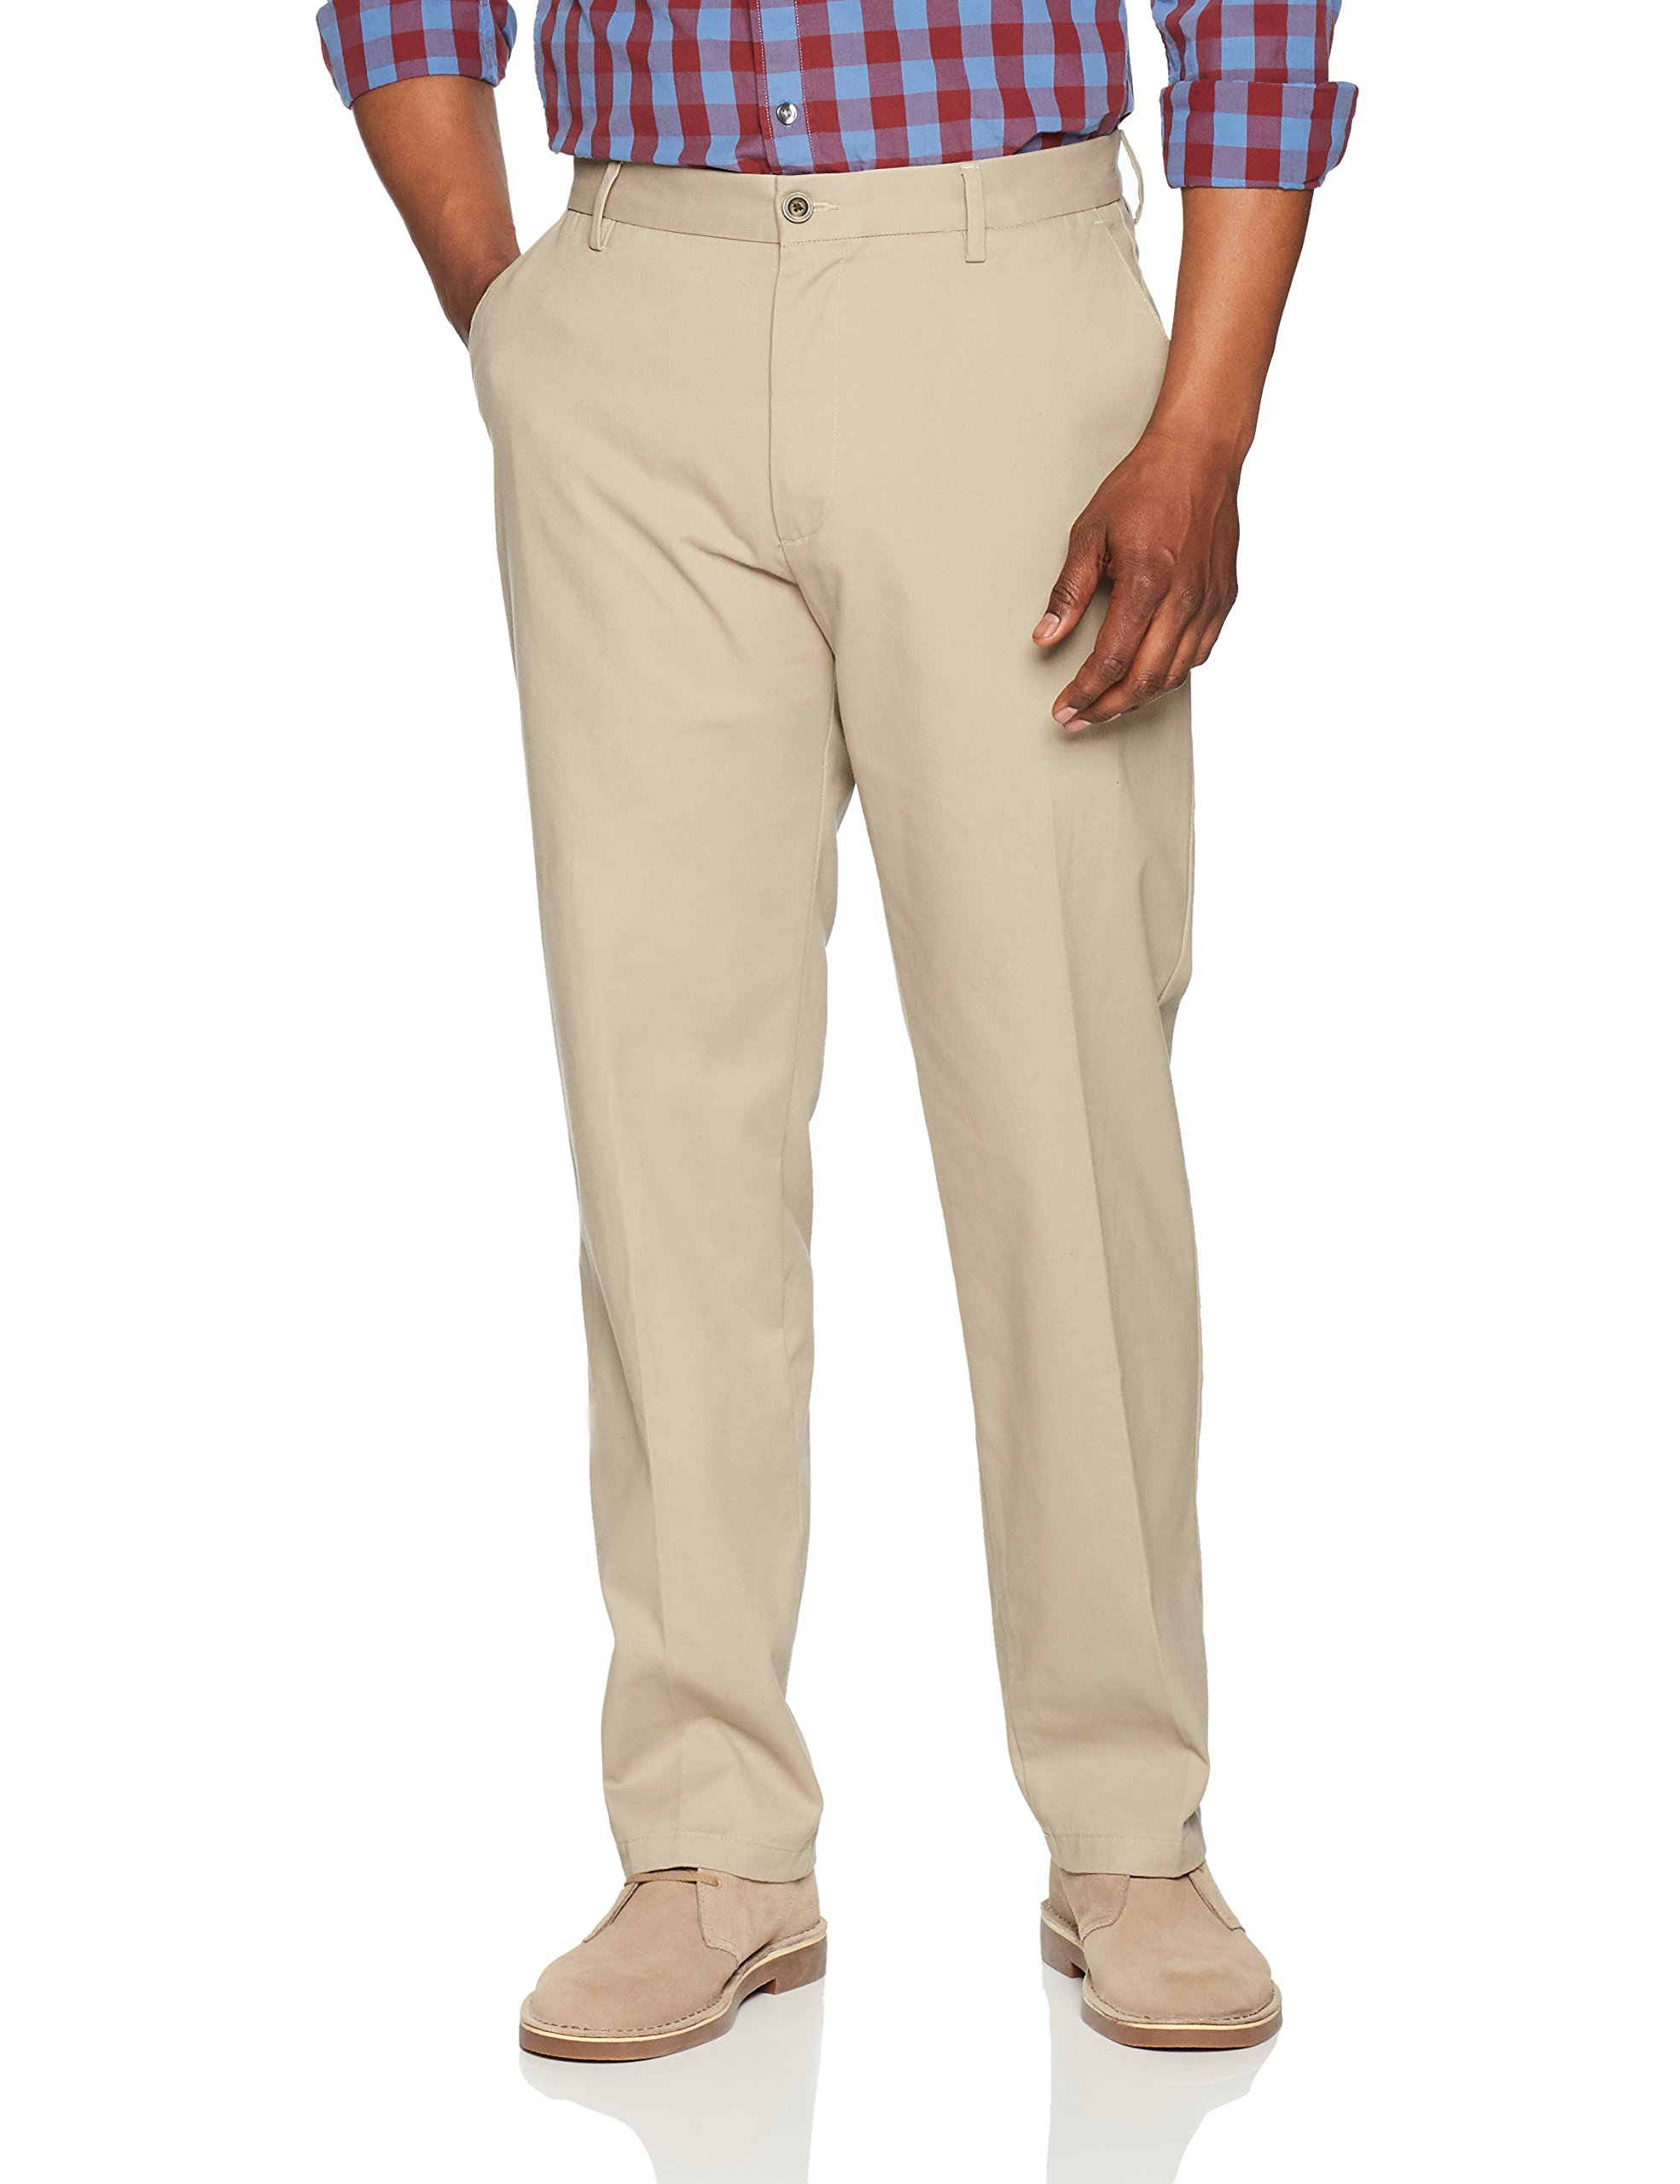 Amazon Essentials Classic Fit Wrinkle Resistant Flat Front